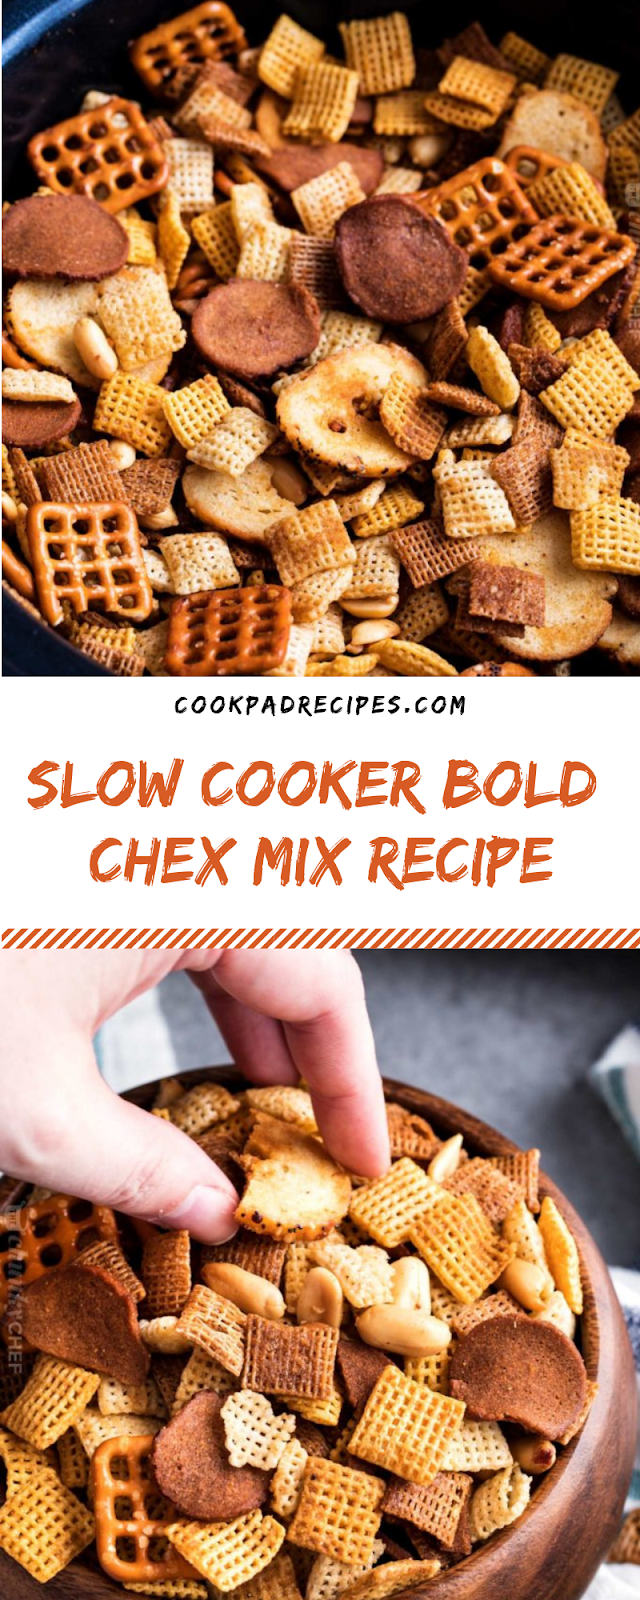 SLOW COOKER BOLD CHEX MIX RECIPE